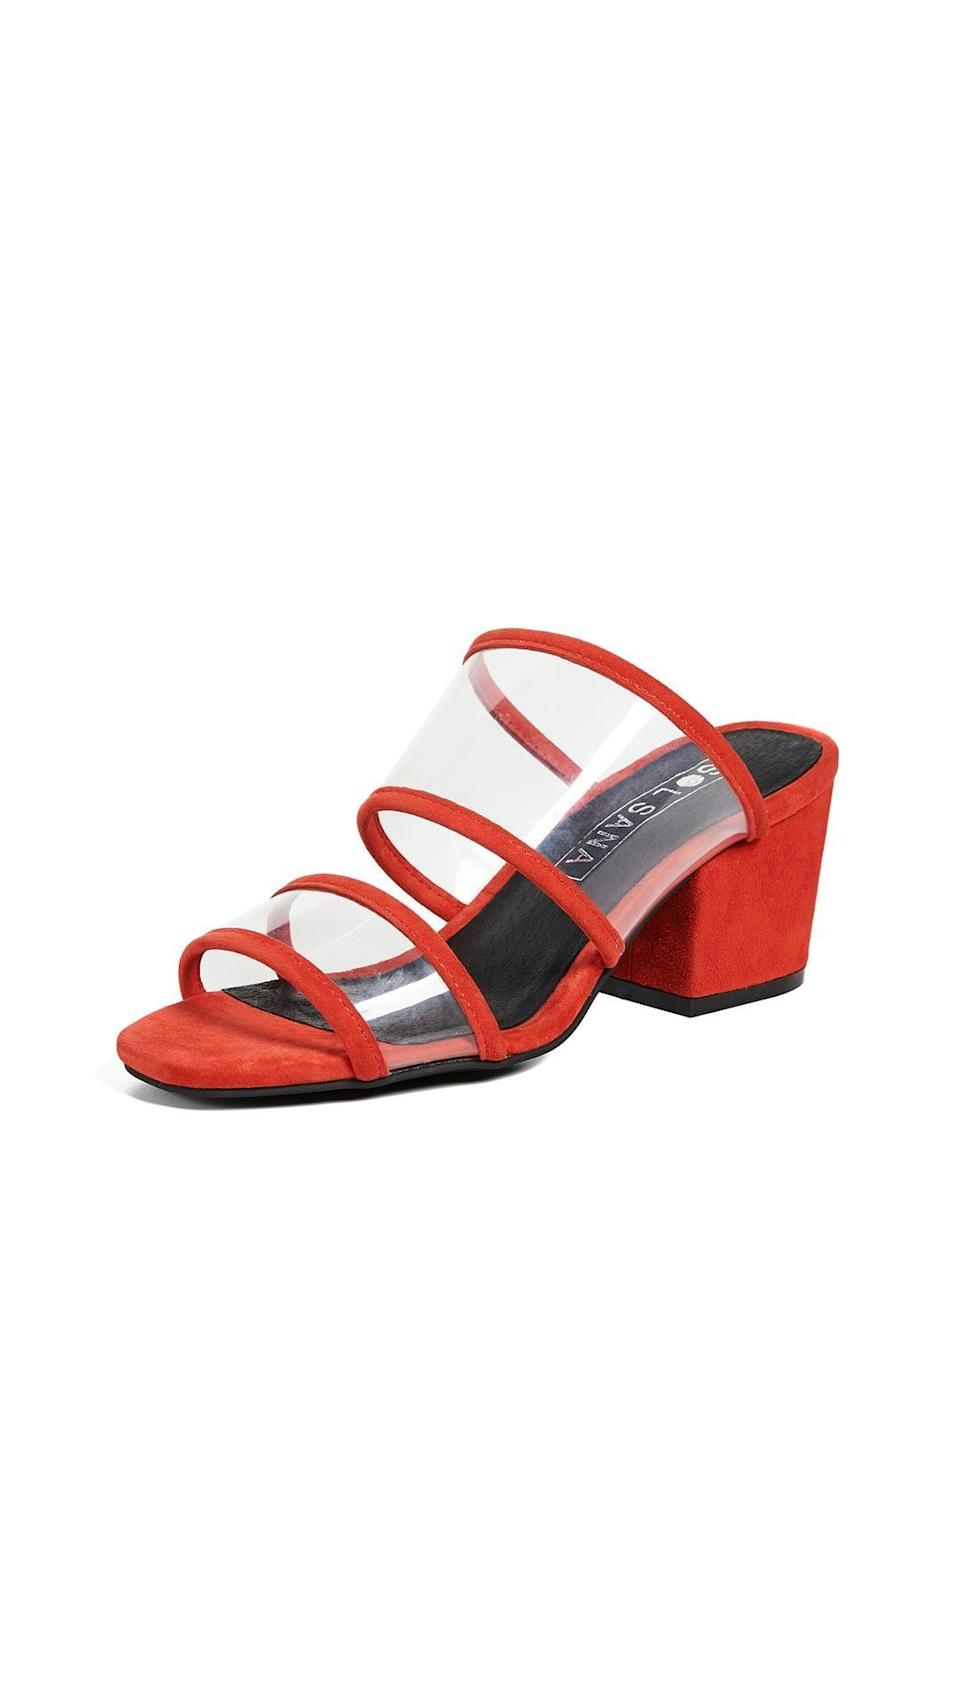 Available in sizes 6 to 10.